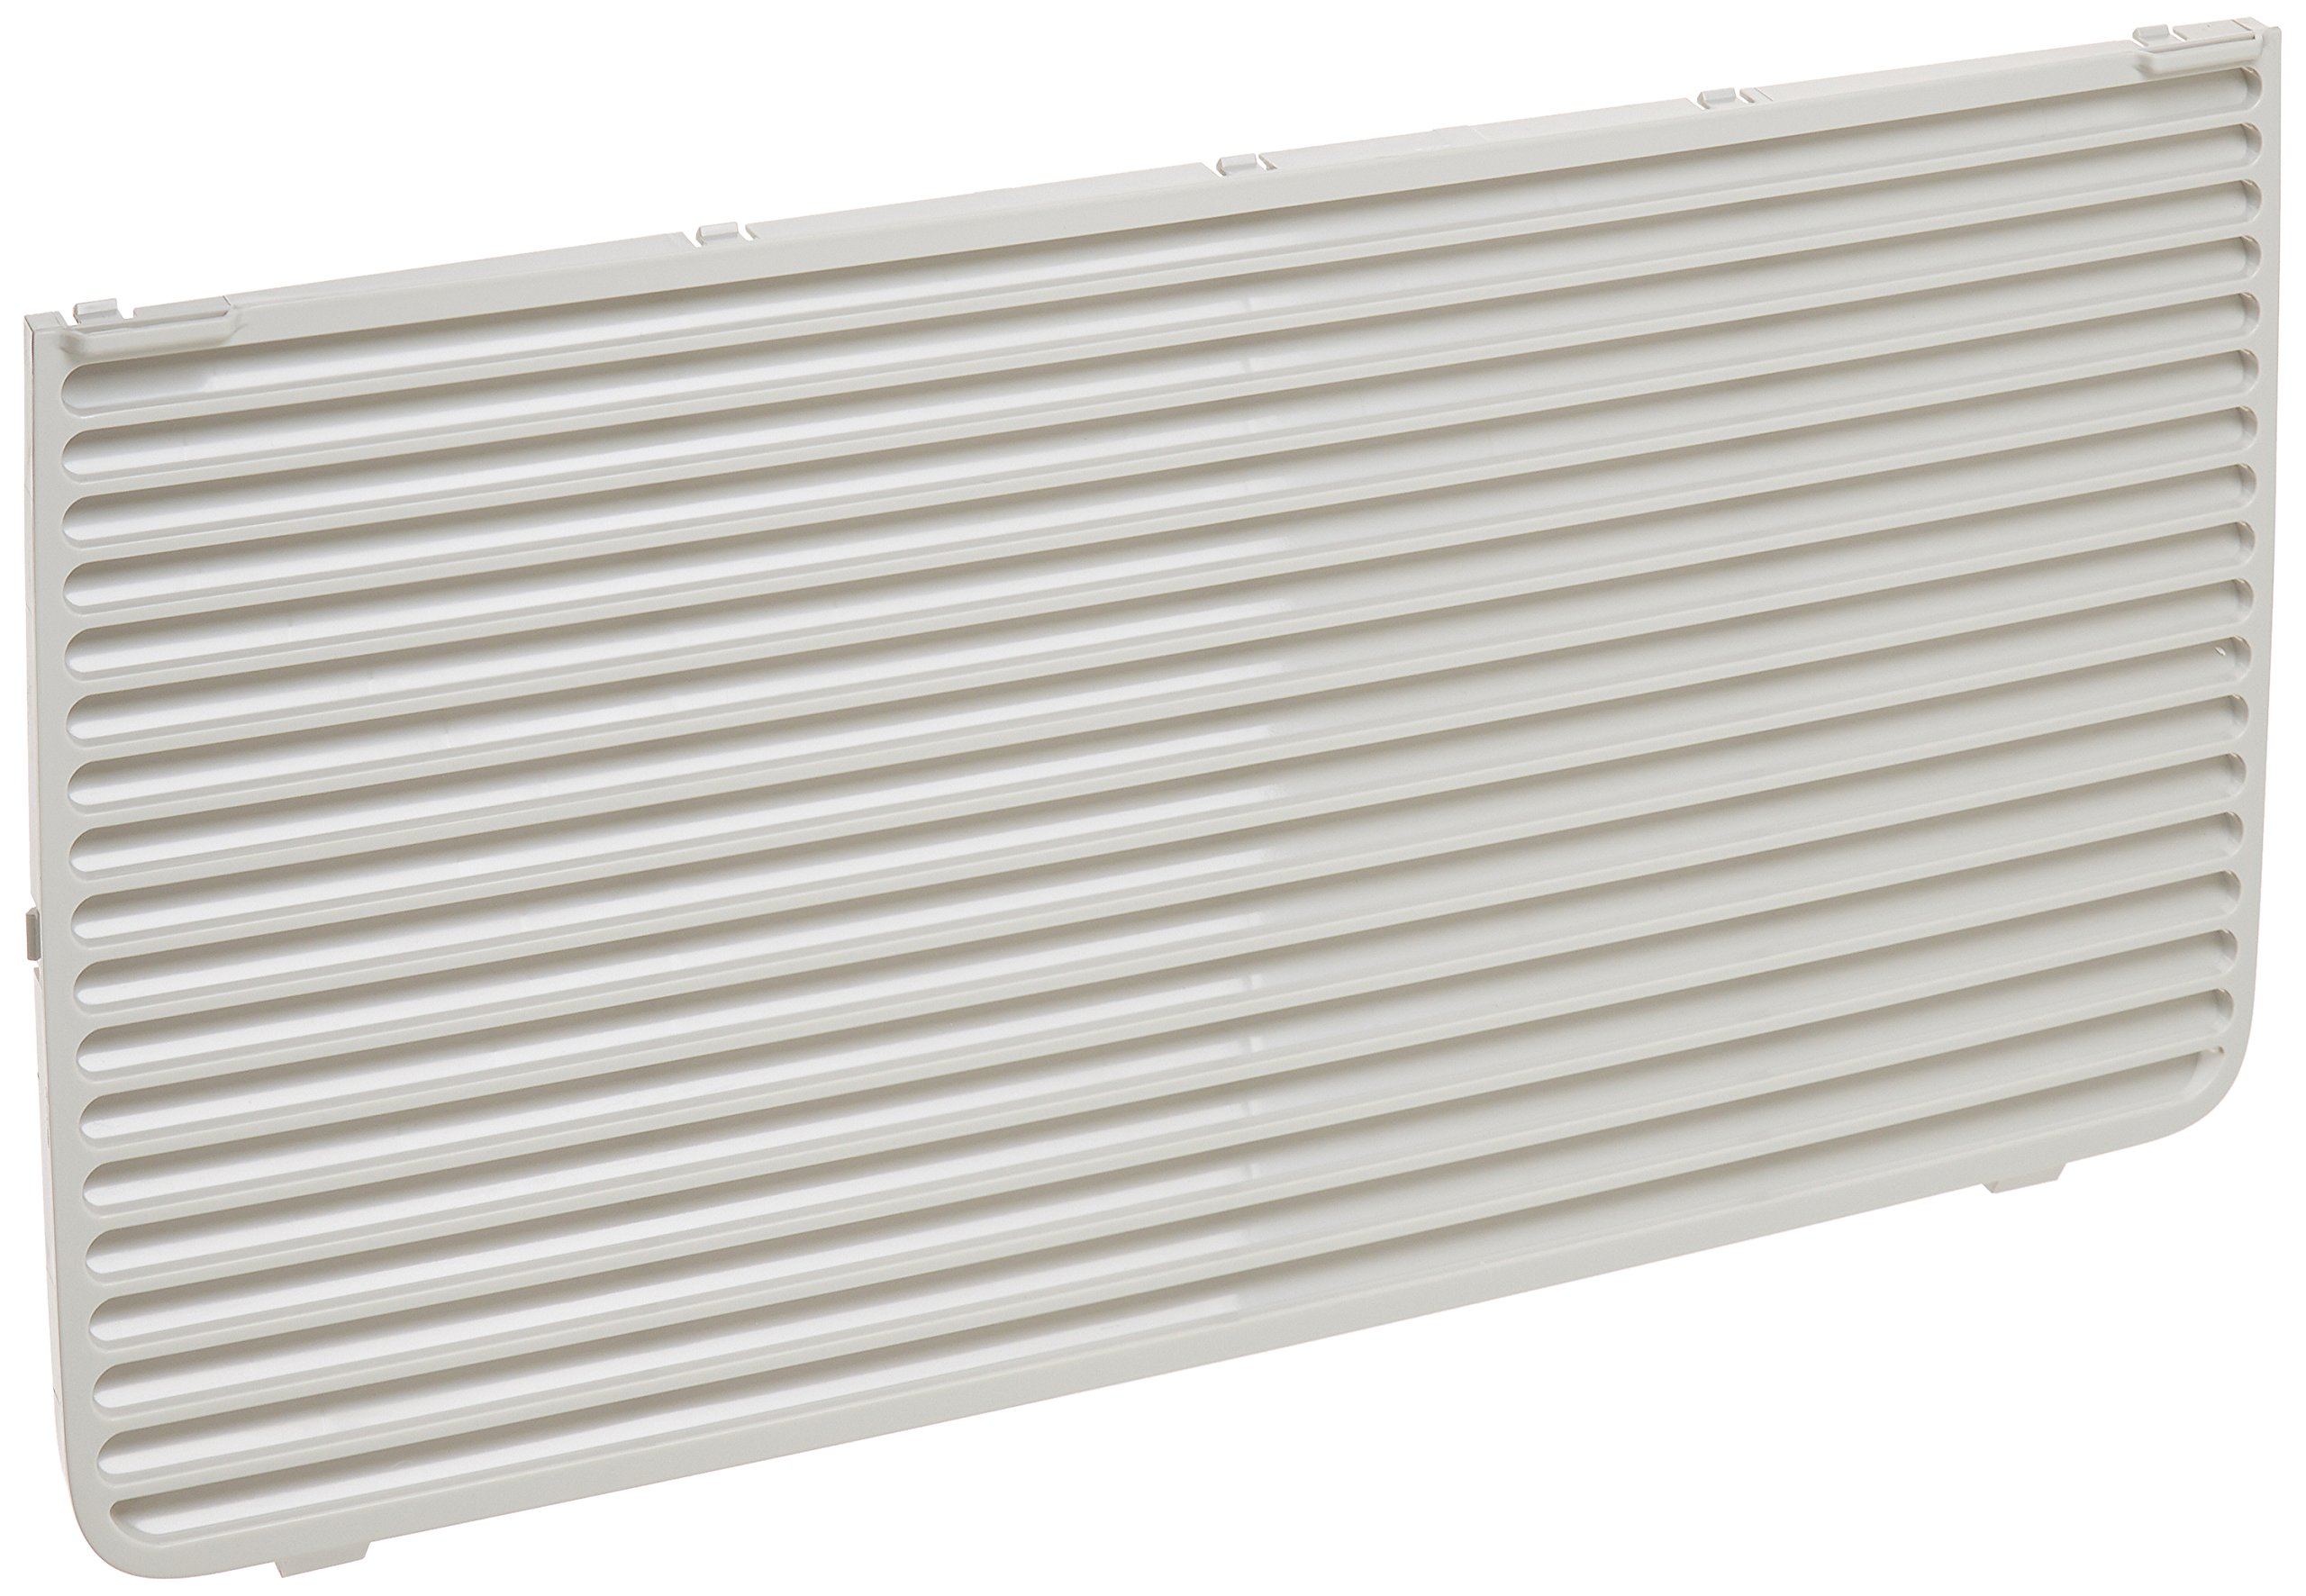 Frigidaire 5304477175 Air Conditioner Front Panel by Frigidaire